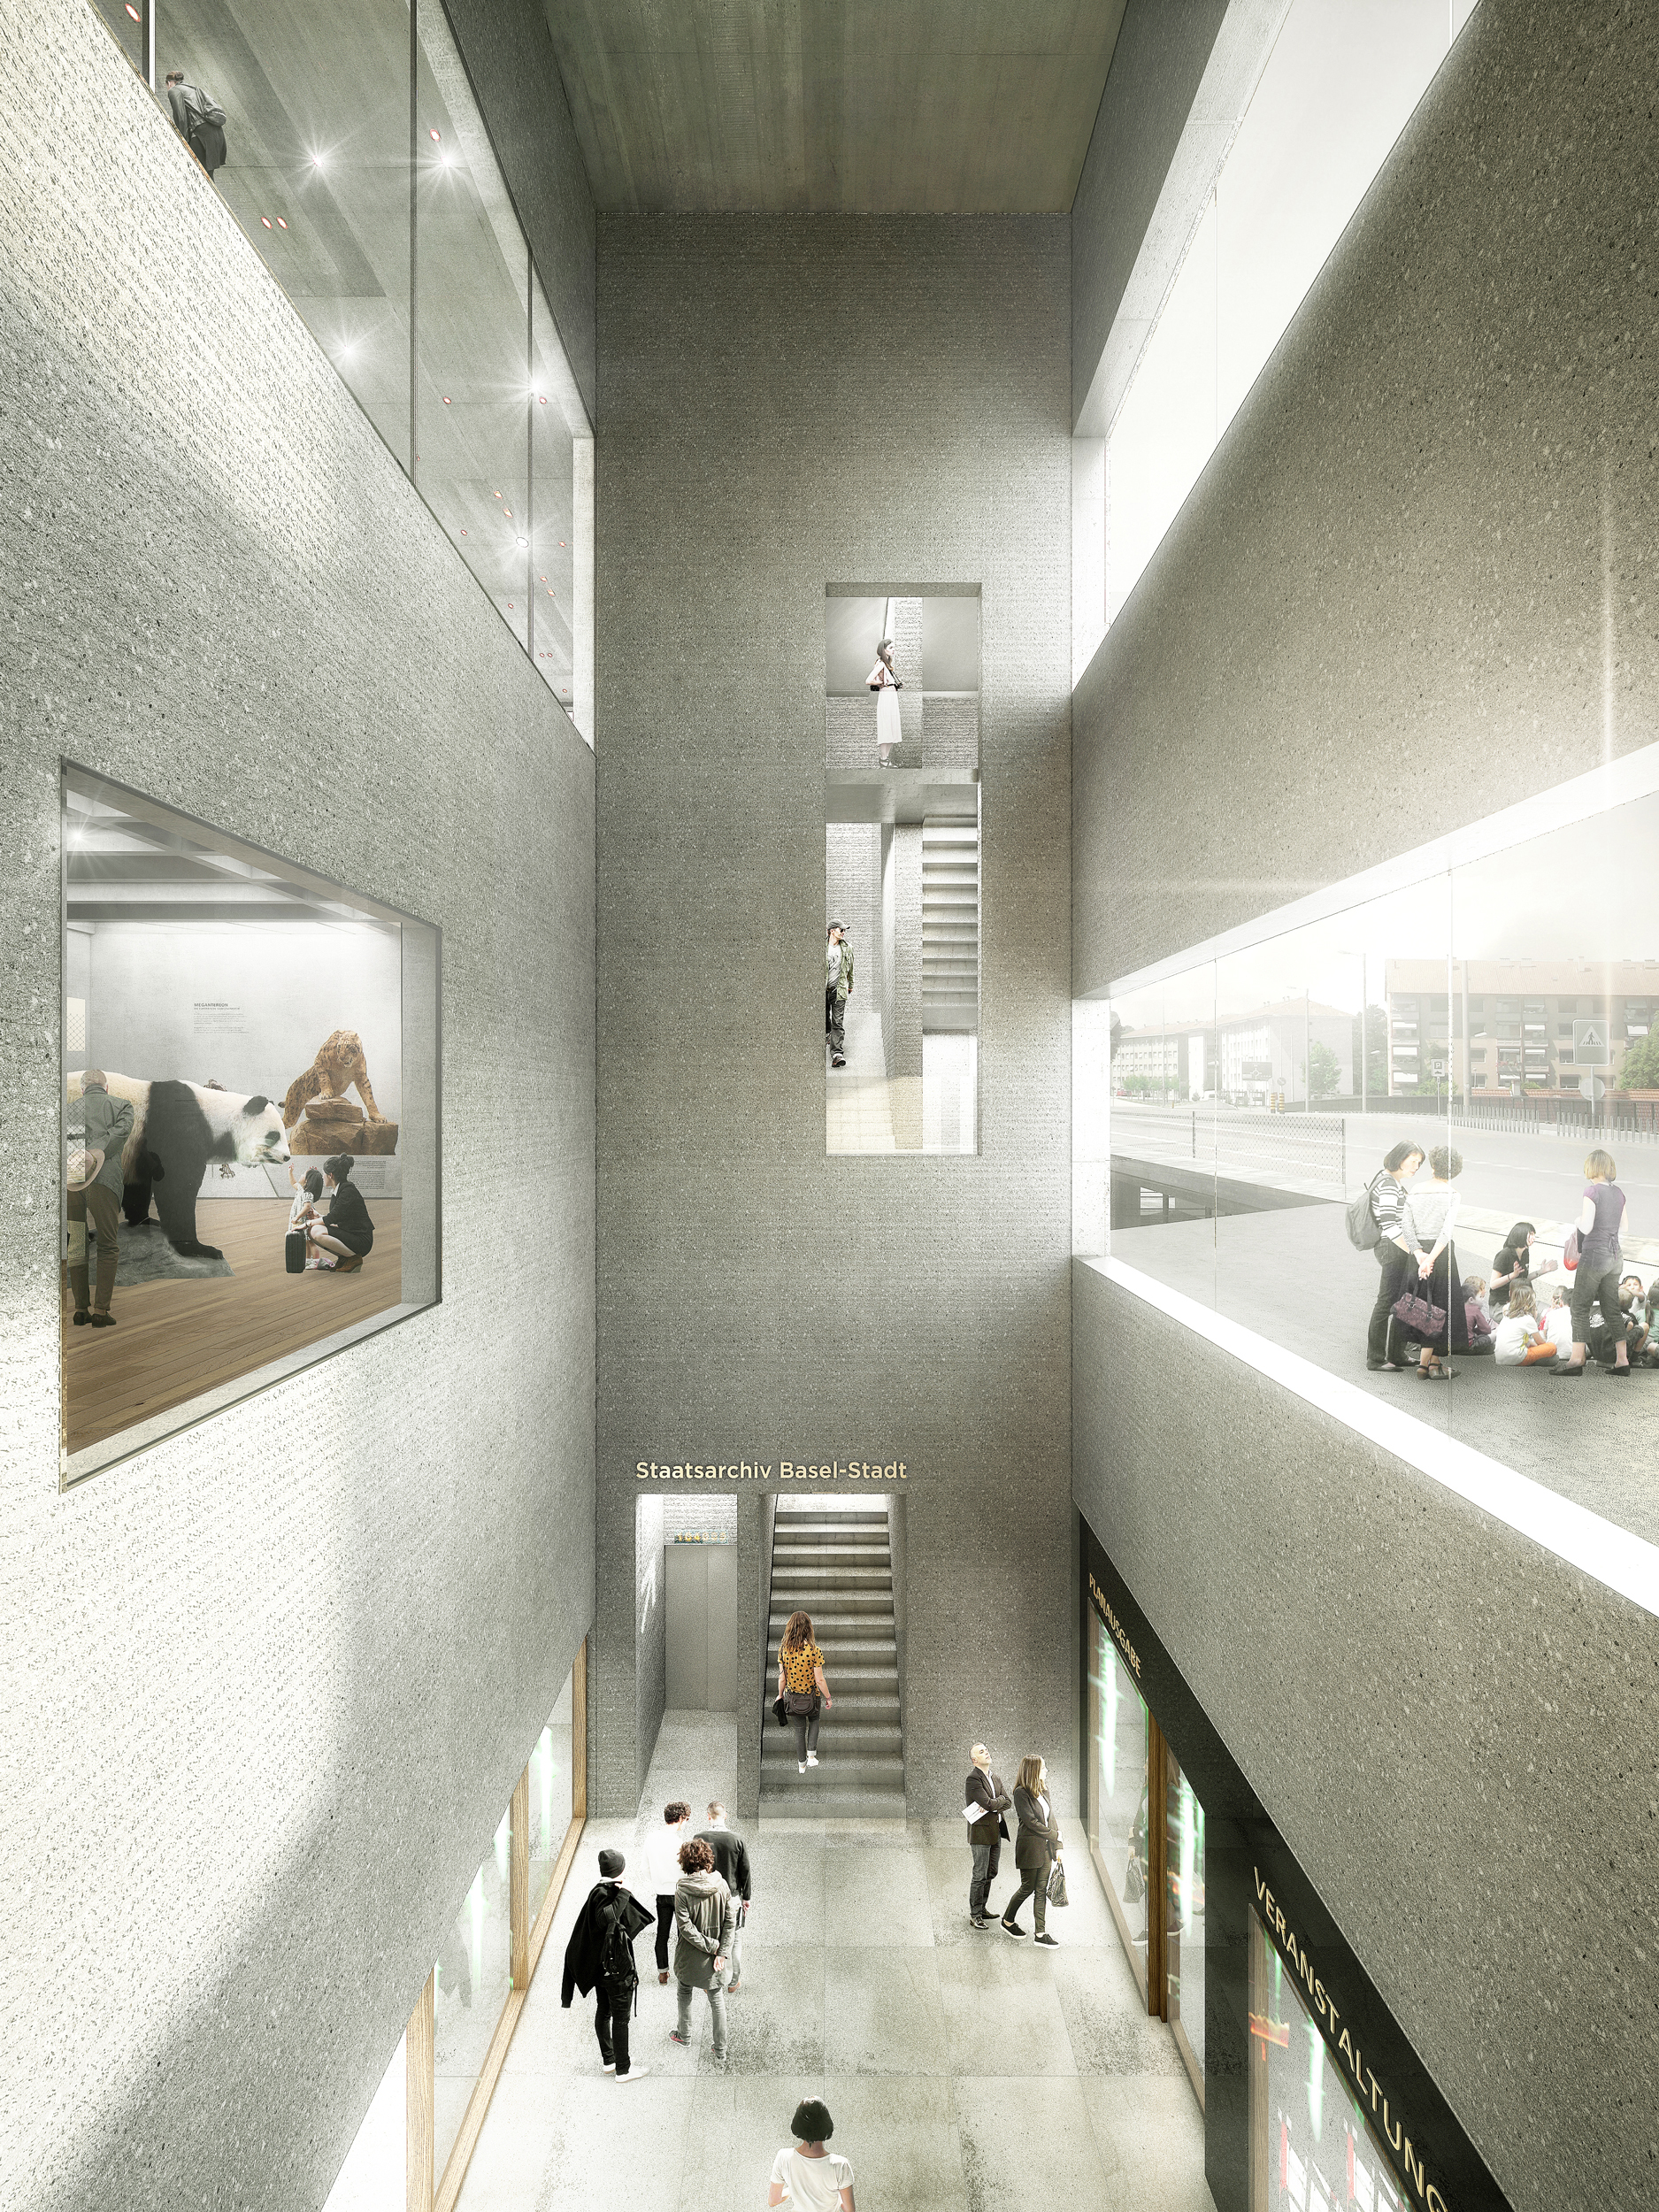 Basel modern museum 28 images barozzi veiga new museum for Changer un robinet exterieur